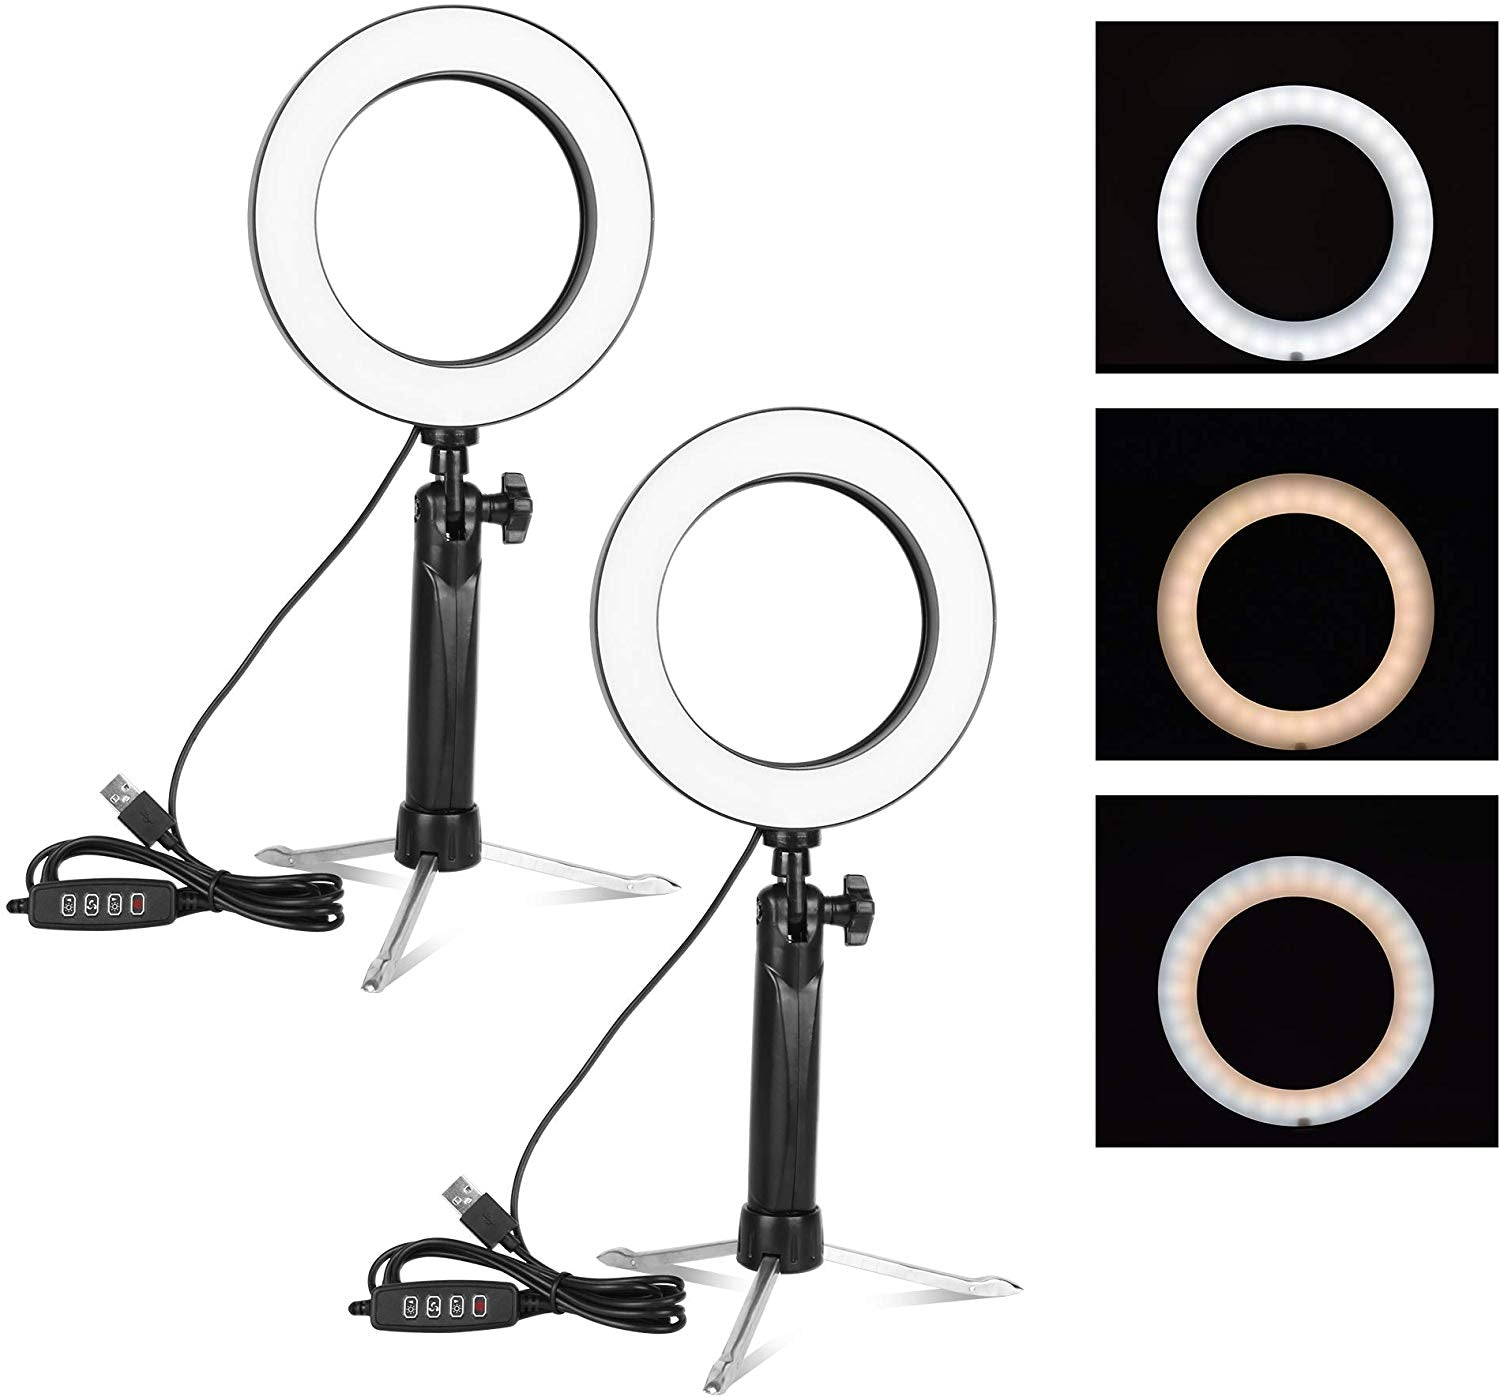 Emart 6'' LED Ring Light with Tripod Stand, 3 Light Modes & 11 Brightness Level